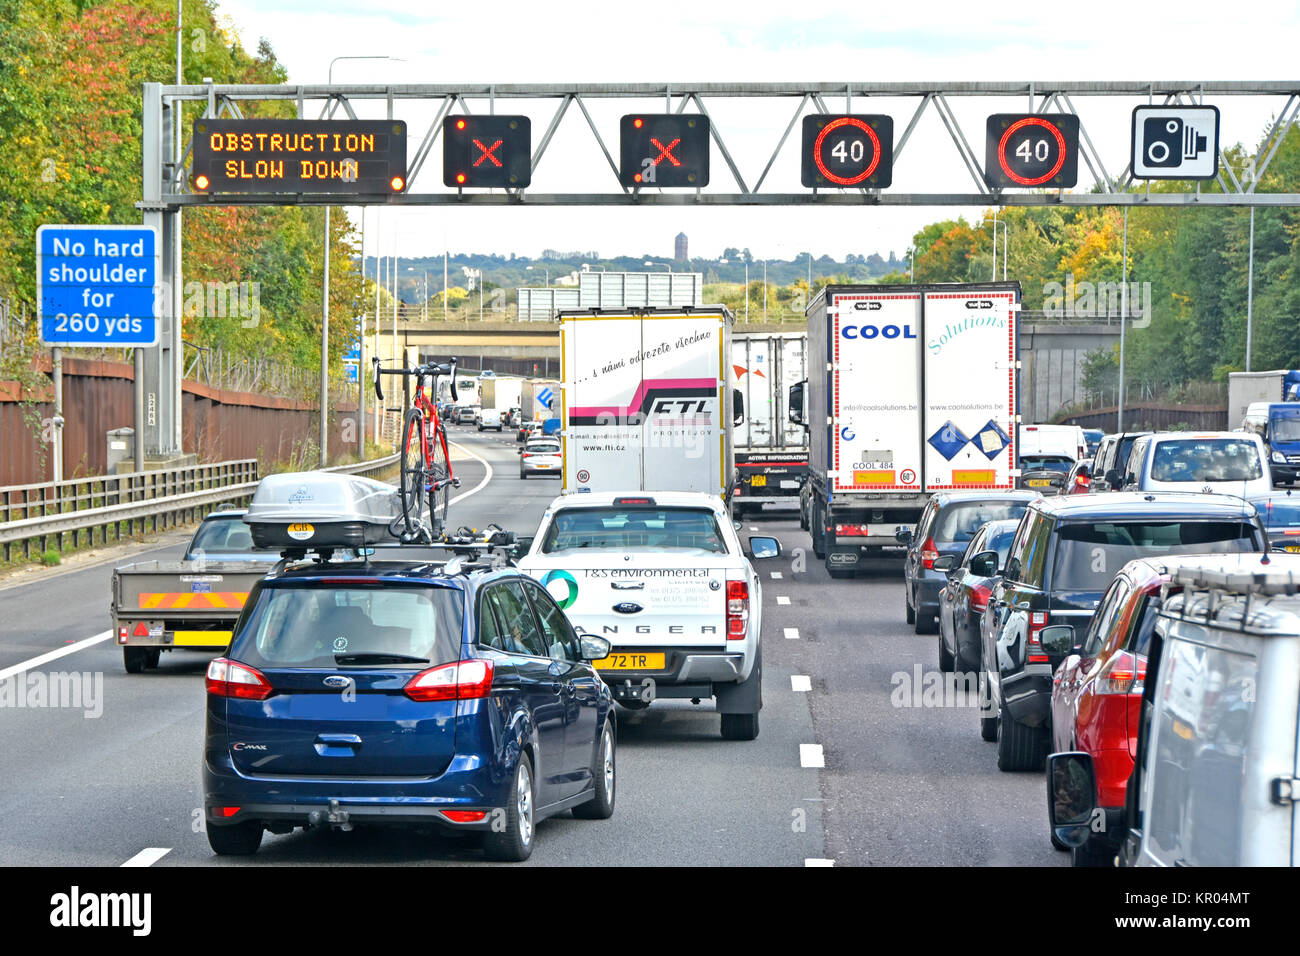 M25 traffic jam signs indicate obstruction in fact an accident ahead two lanes closed queues as vehicles merge into - Stock Image